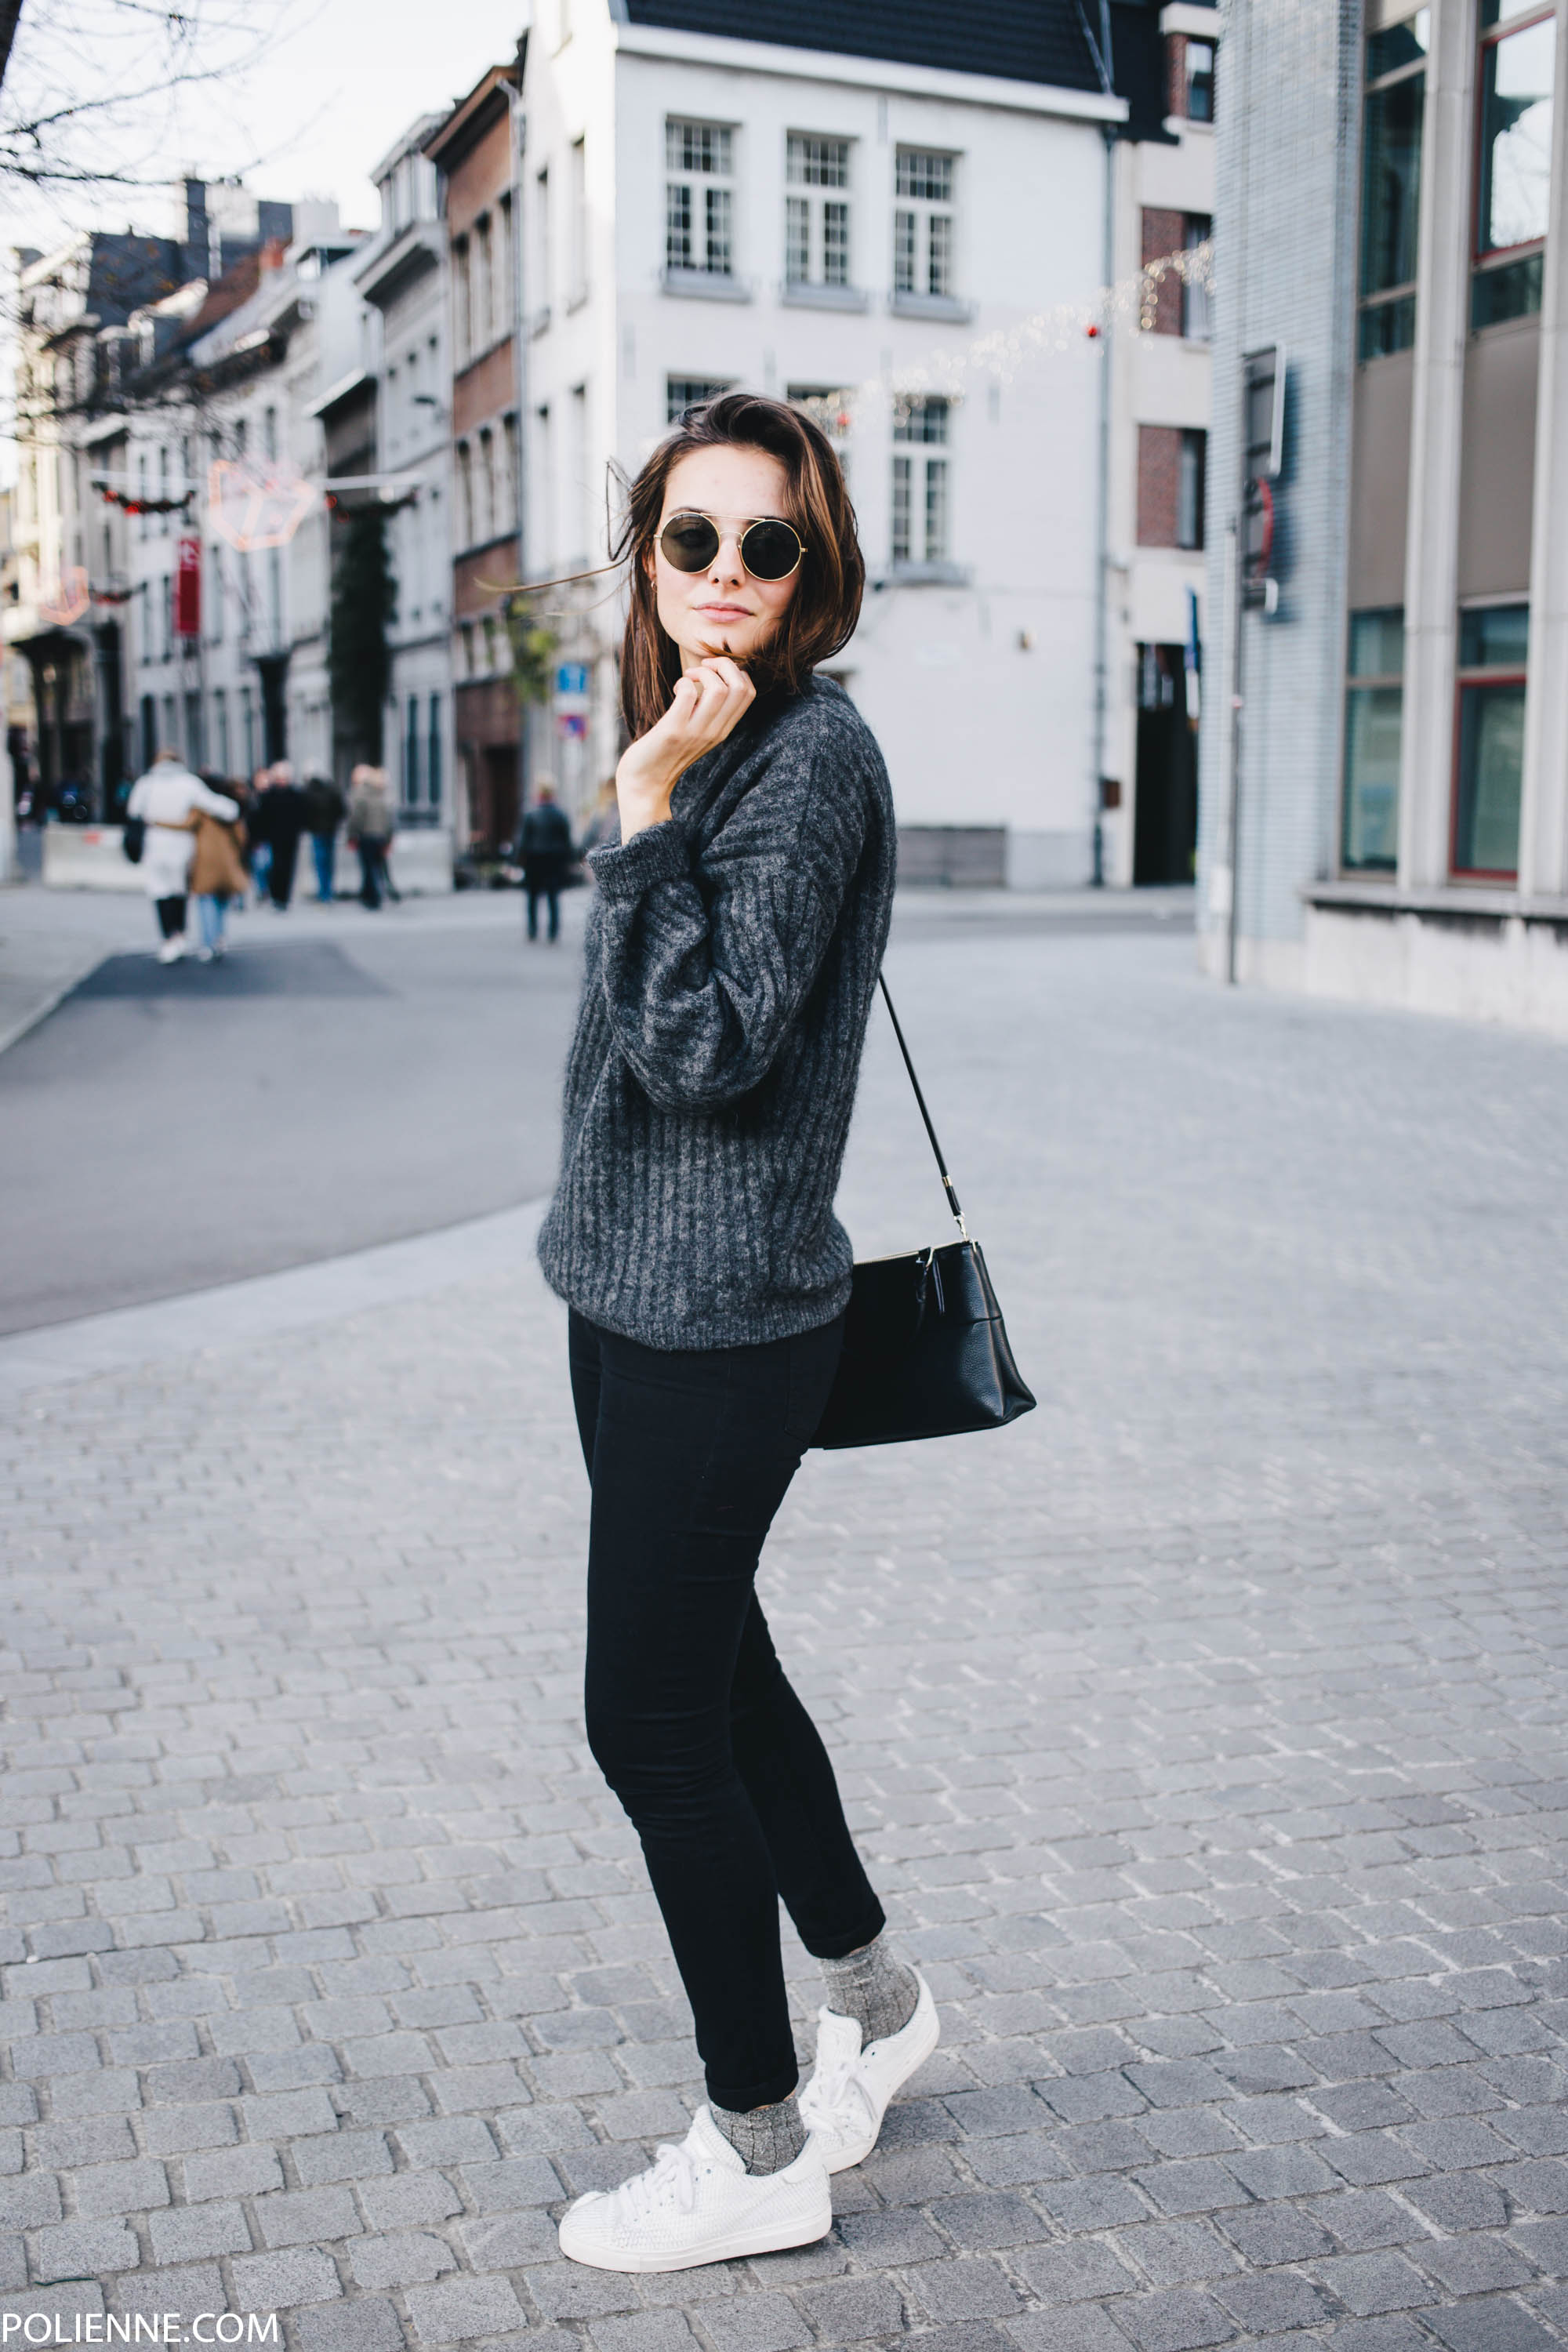 A simple grey knitted sweater worn with a pair of cute matching socks, white sneakers, and black denim jeans makes for a simplistic but stylish winter look. Via Rosanna van Billie-Rose. Jacket: H&M, Sweater: Acne, Denim: Cheap Monday, Sneakers: Pinko, Bag: Coach.